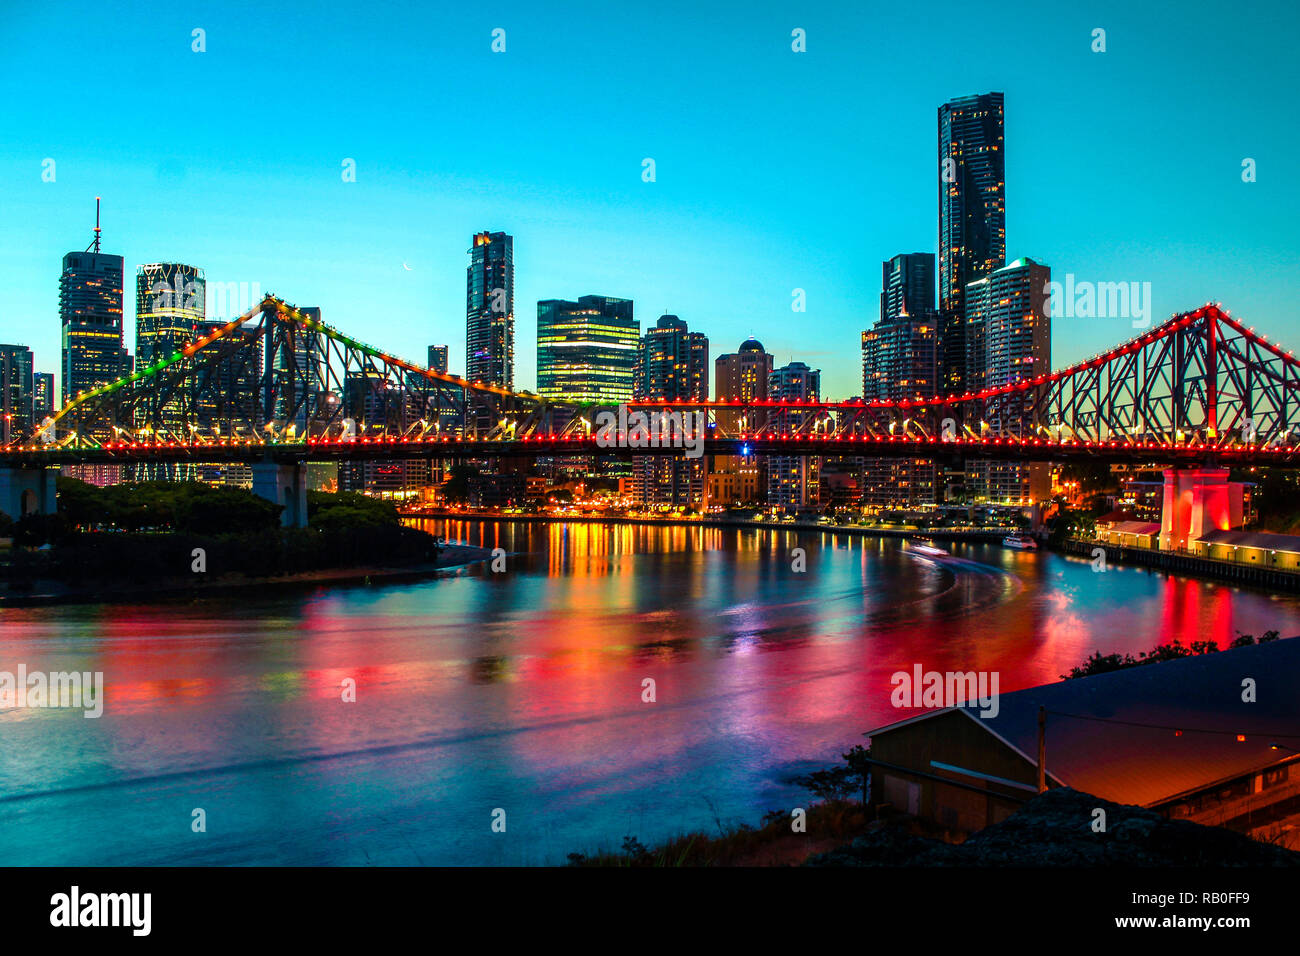 Colourful skyline of Brisbane by night with illuminated Story Bridge and clear blue sky (Brisbane, Queensland, Australia) - Stock Image